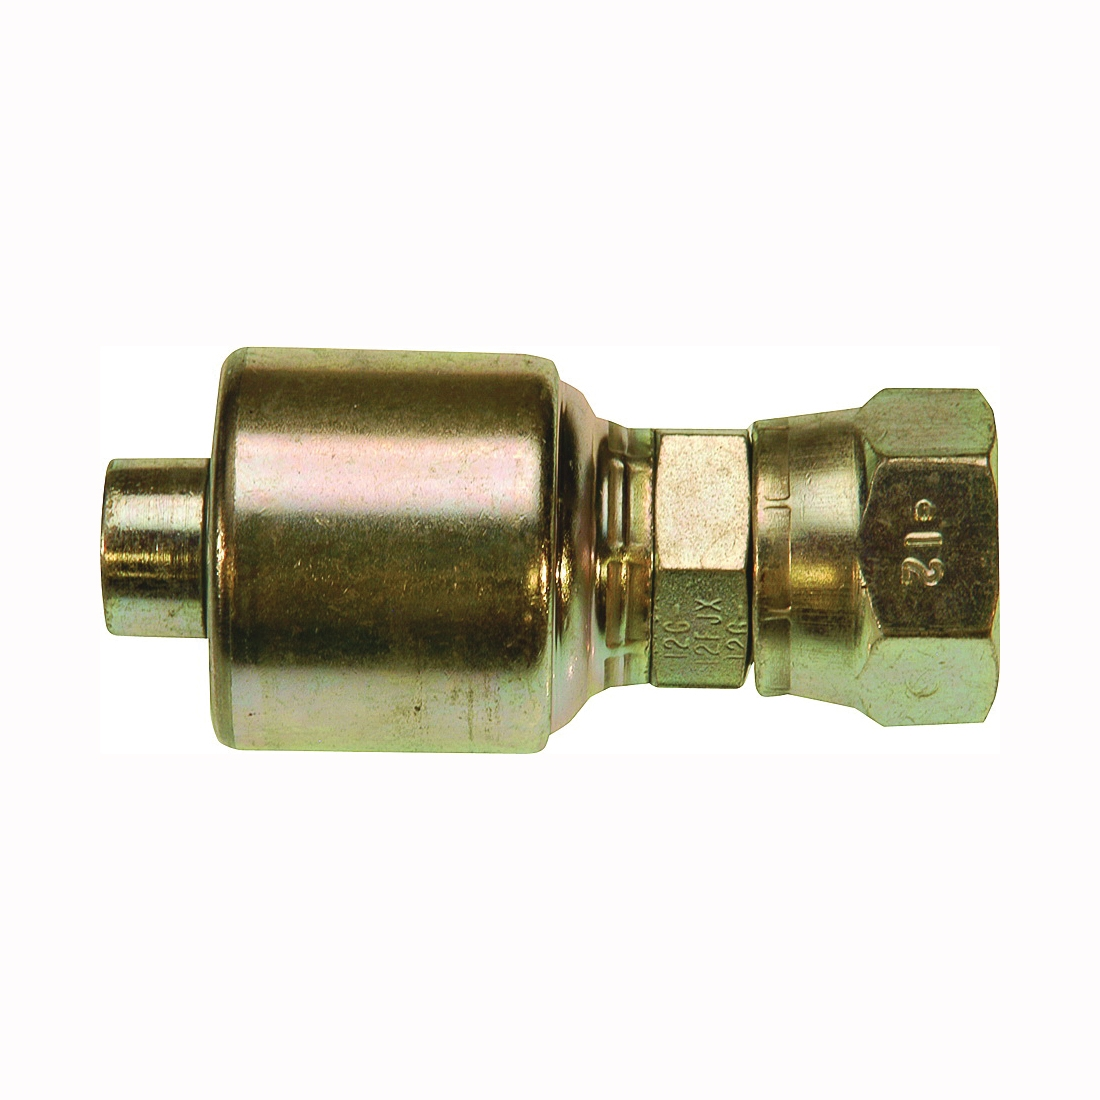 Picture of GATES MegaCrimp G25170-0406 Hose Coupling, 9/16-18, Crimp x JIC, Straight Angle, Steel, Zinc